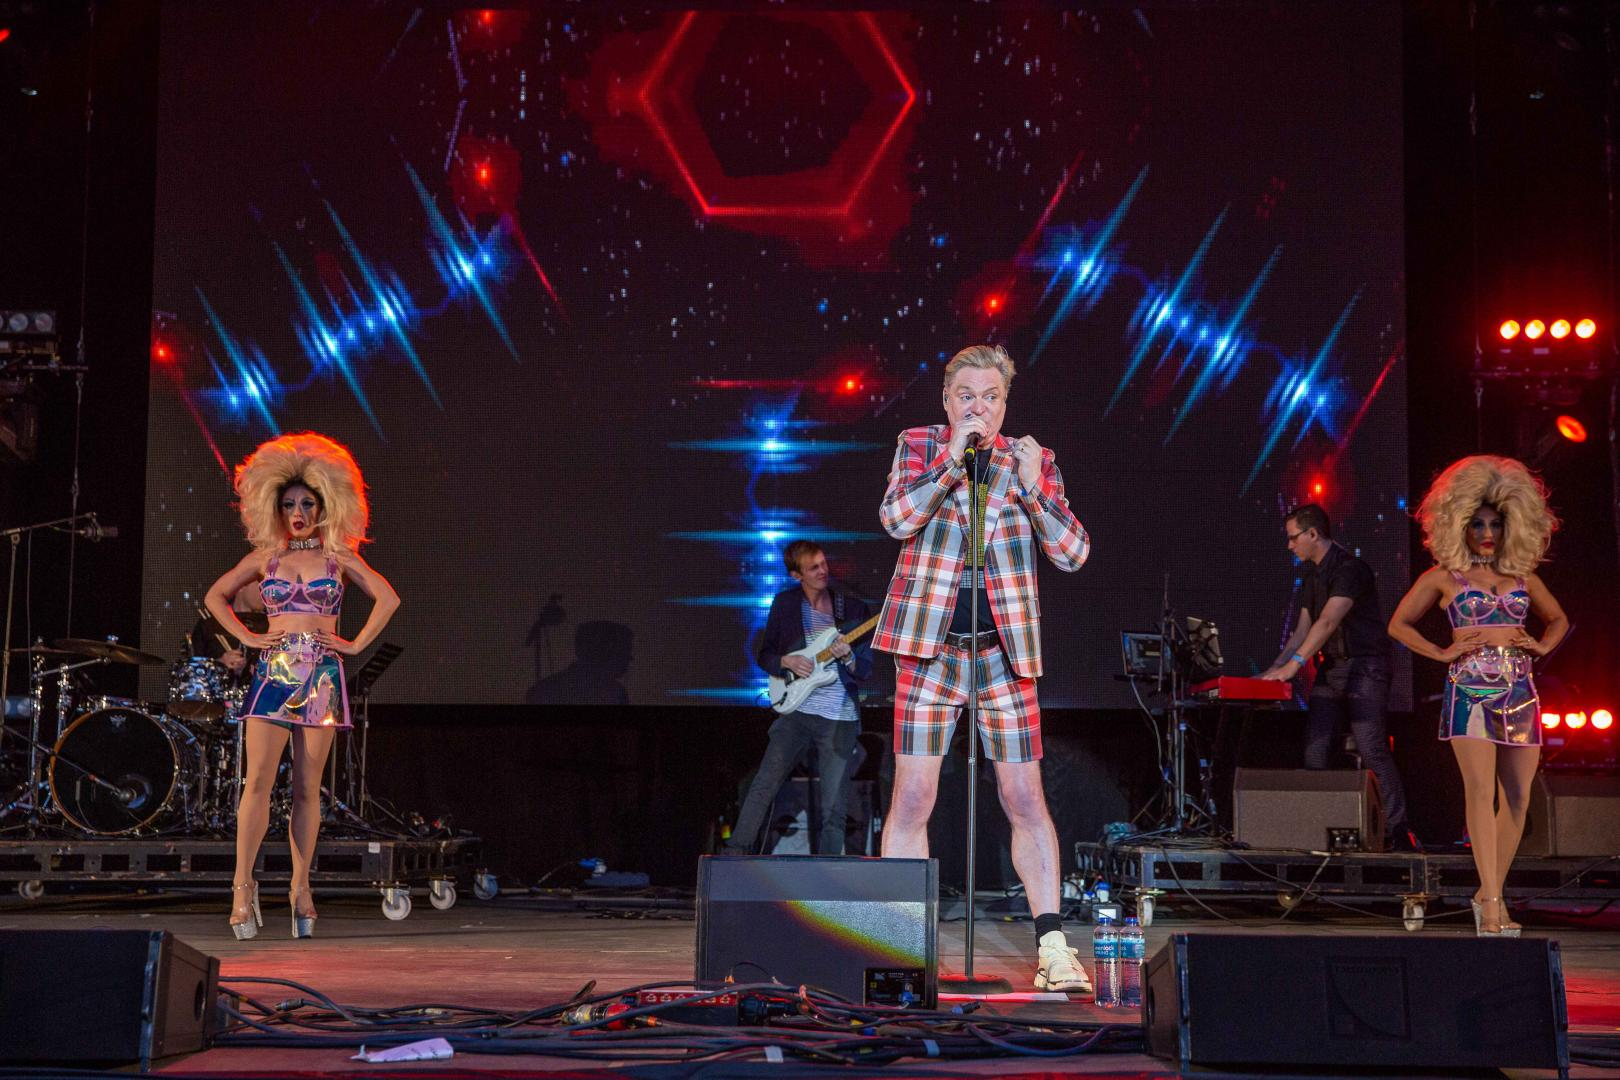 Andy Bell performs at Lets Rock Norwich 2019